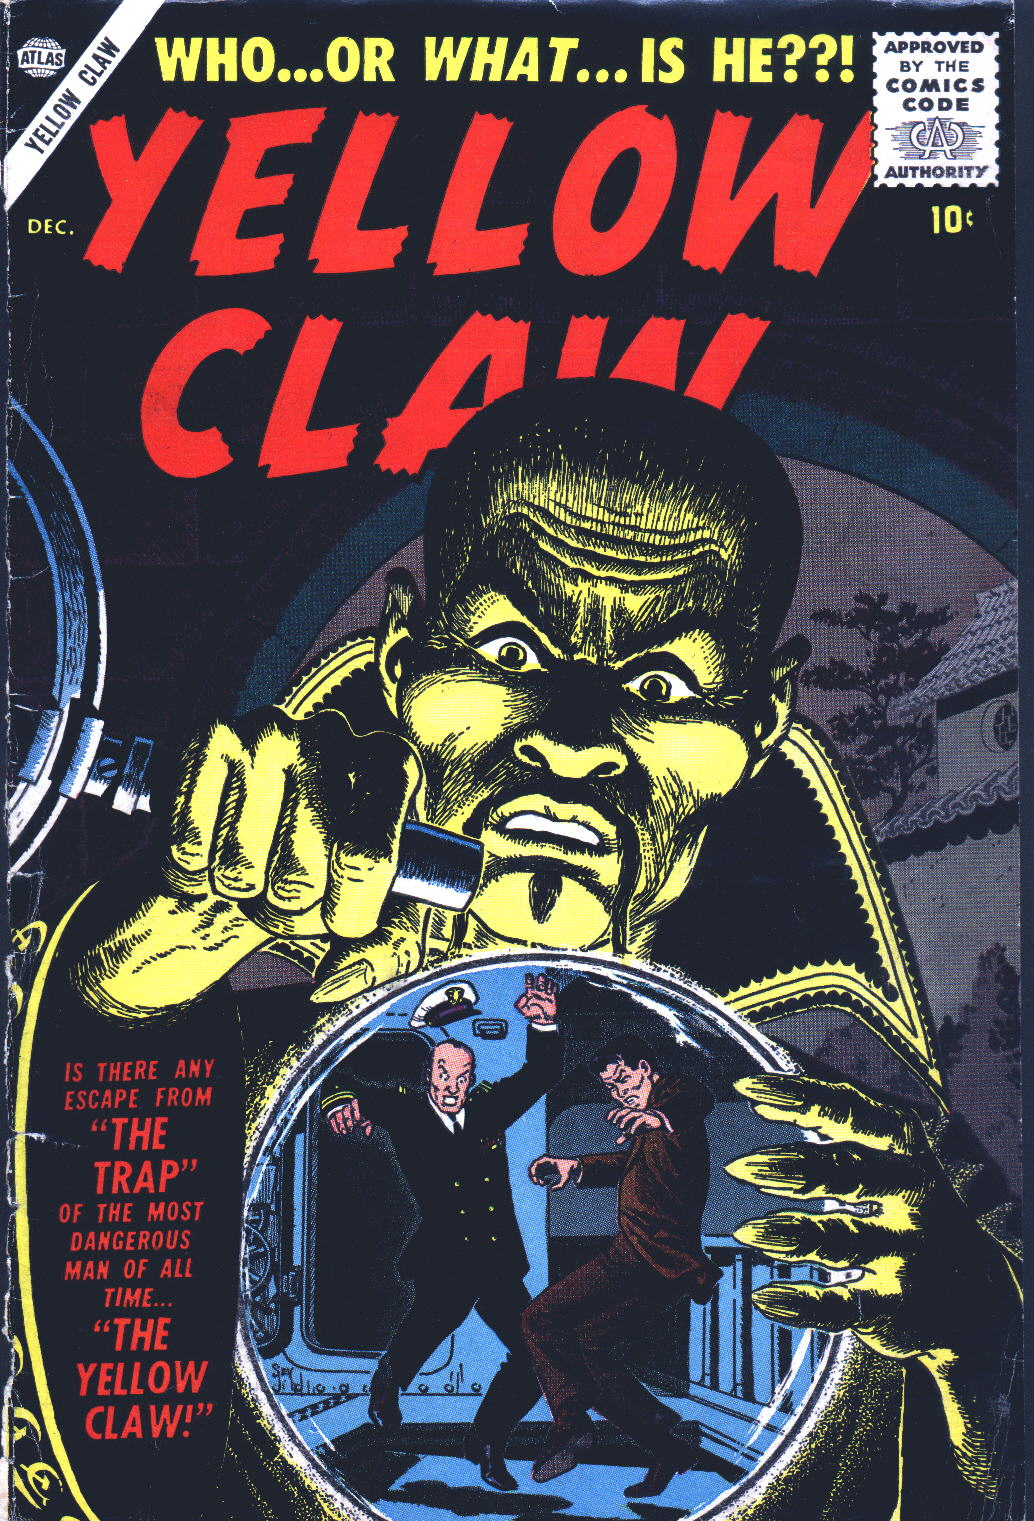 Yellow Claw (1956) #2, cover by John Severin.